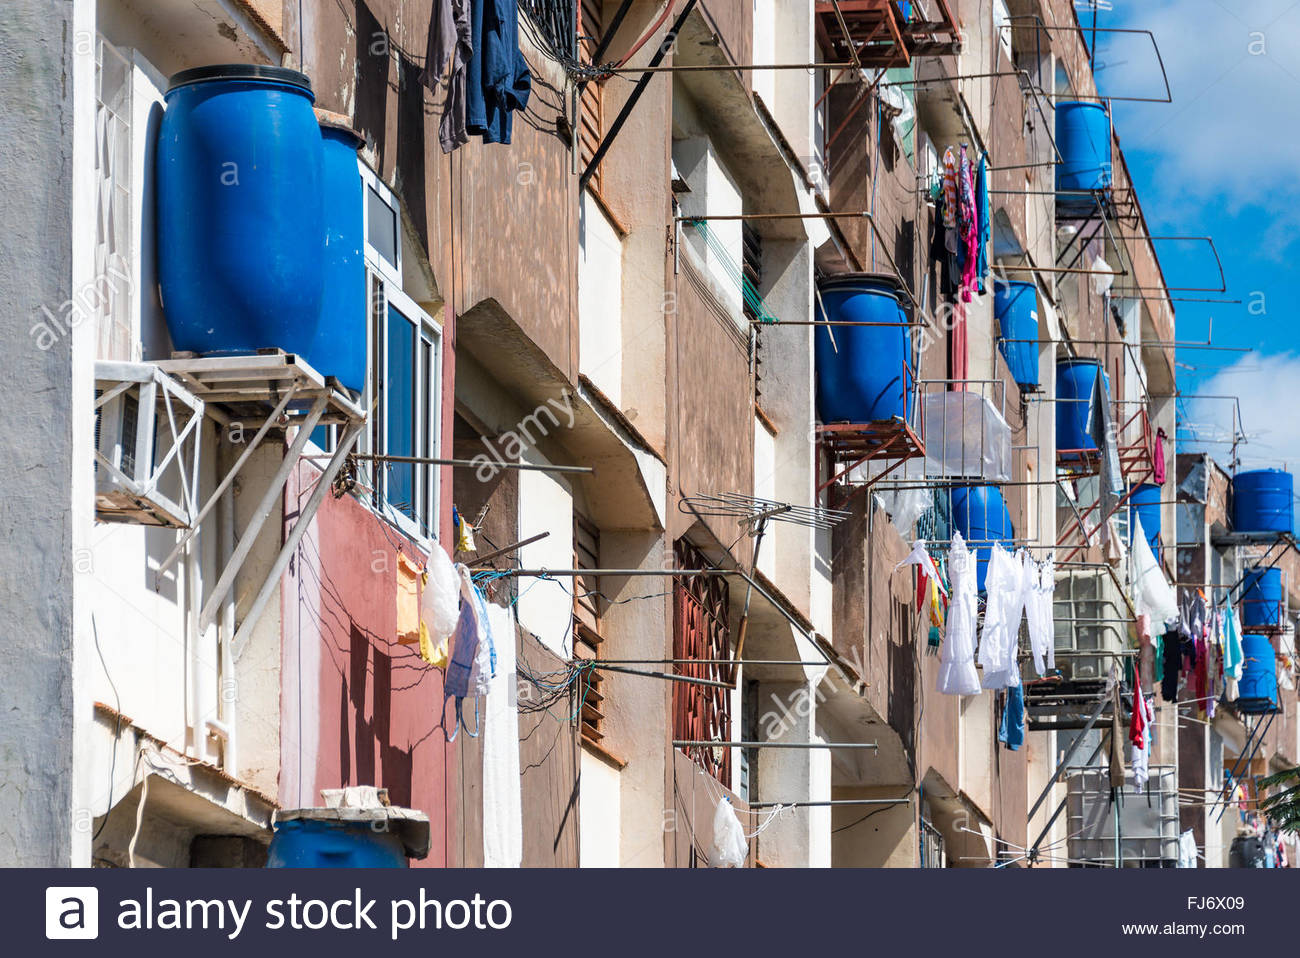 Water shortage solution: plastic tanks in each tenant apartment. Since water supply is unreliable, tenants keep - Stock Image